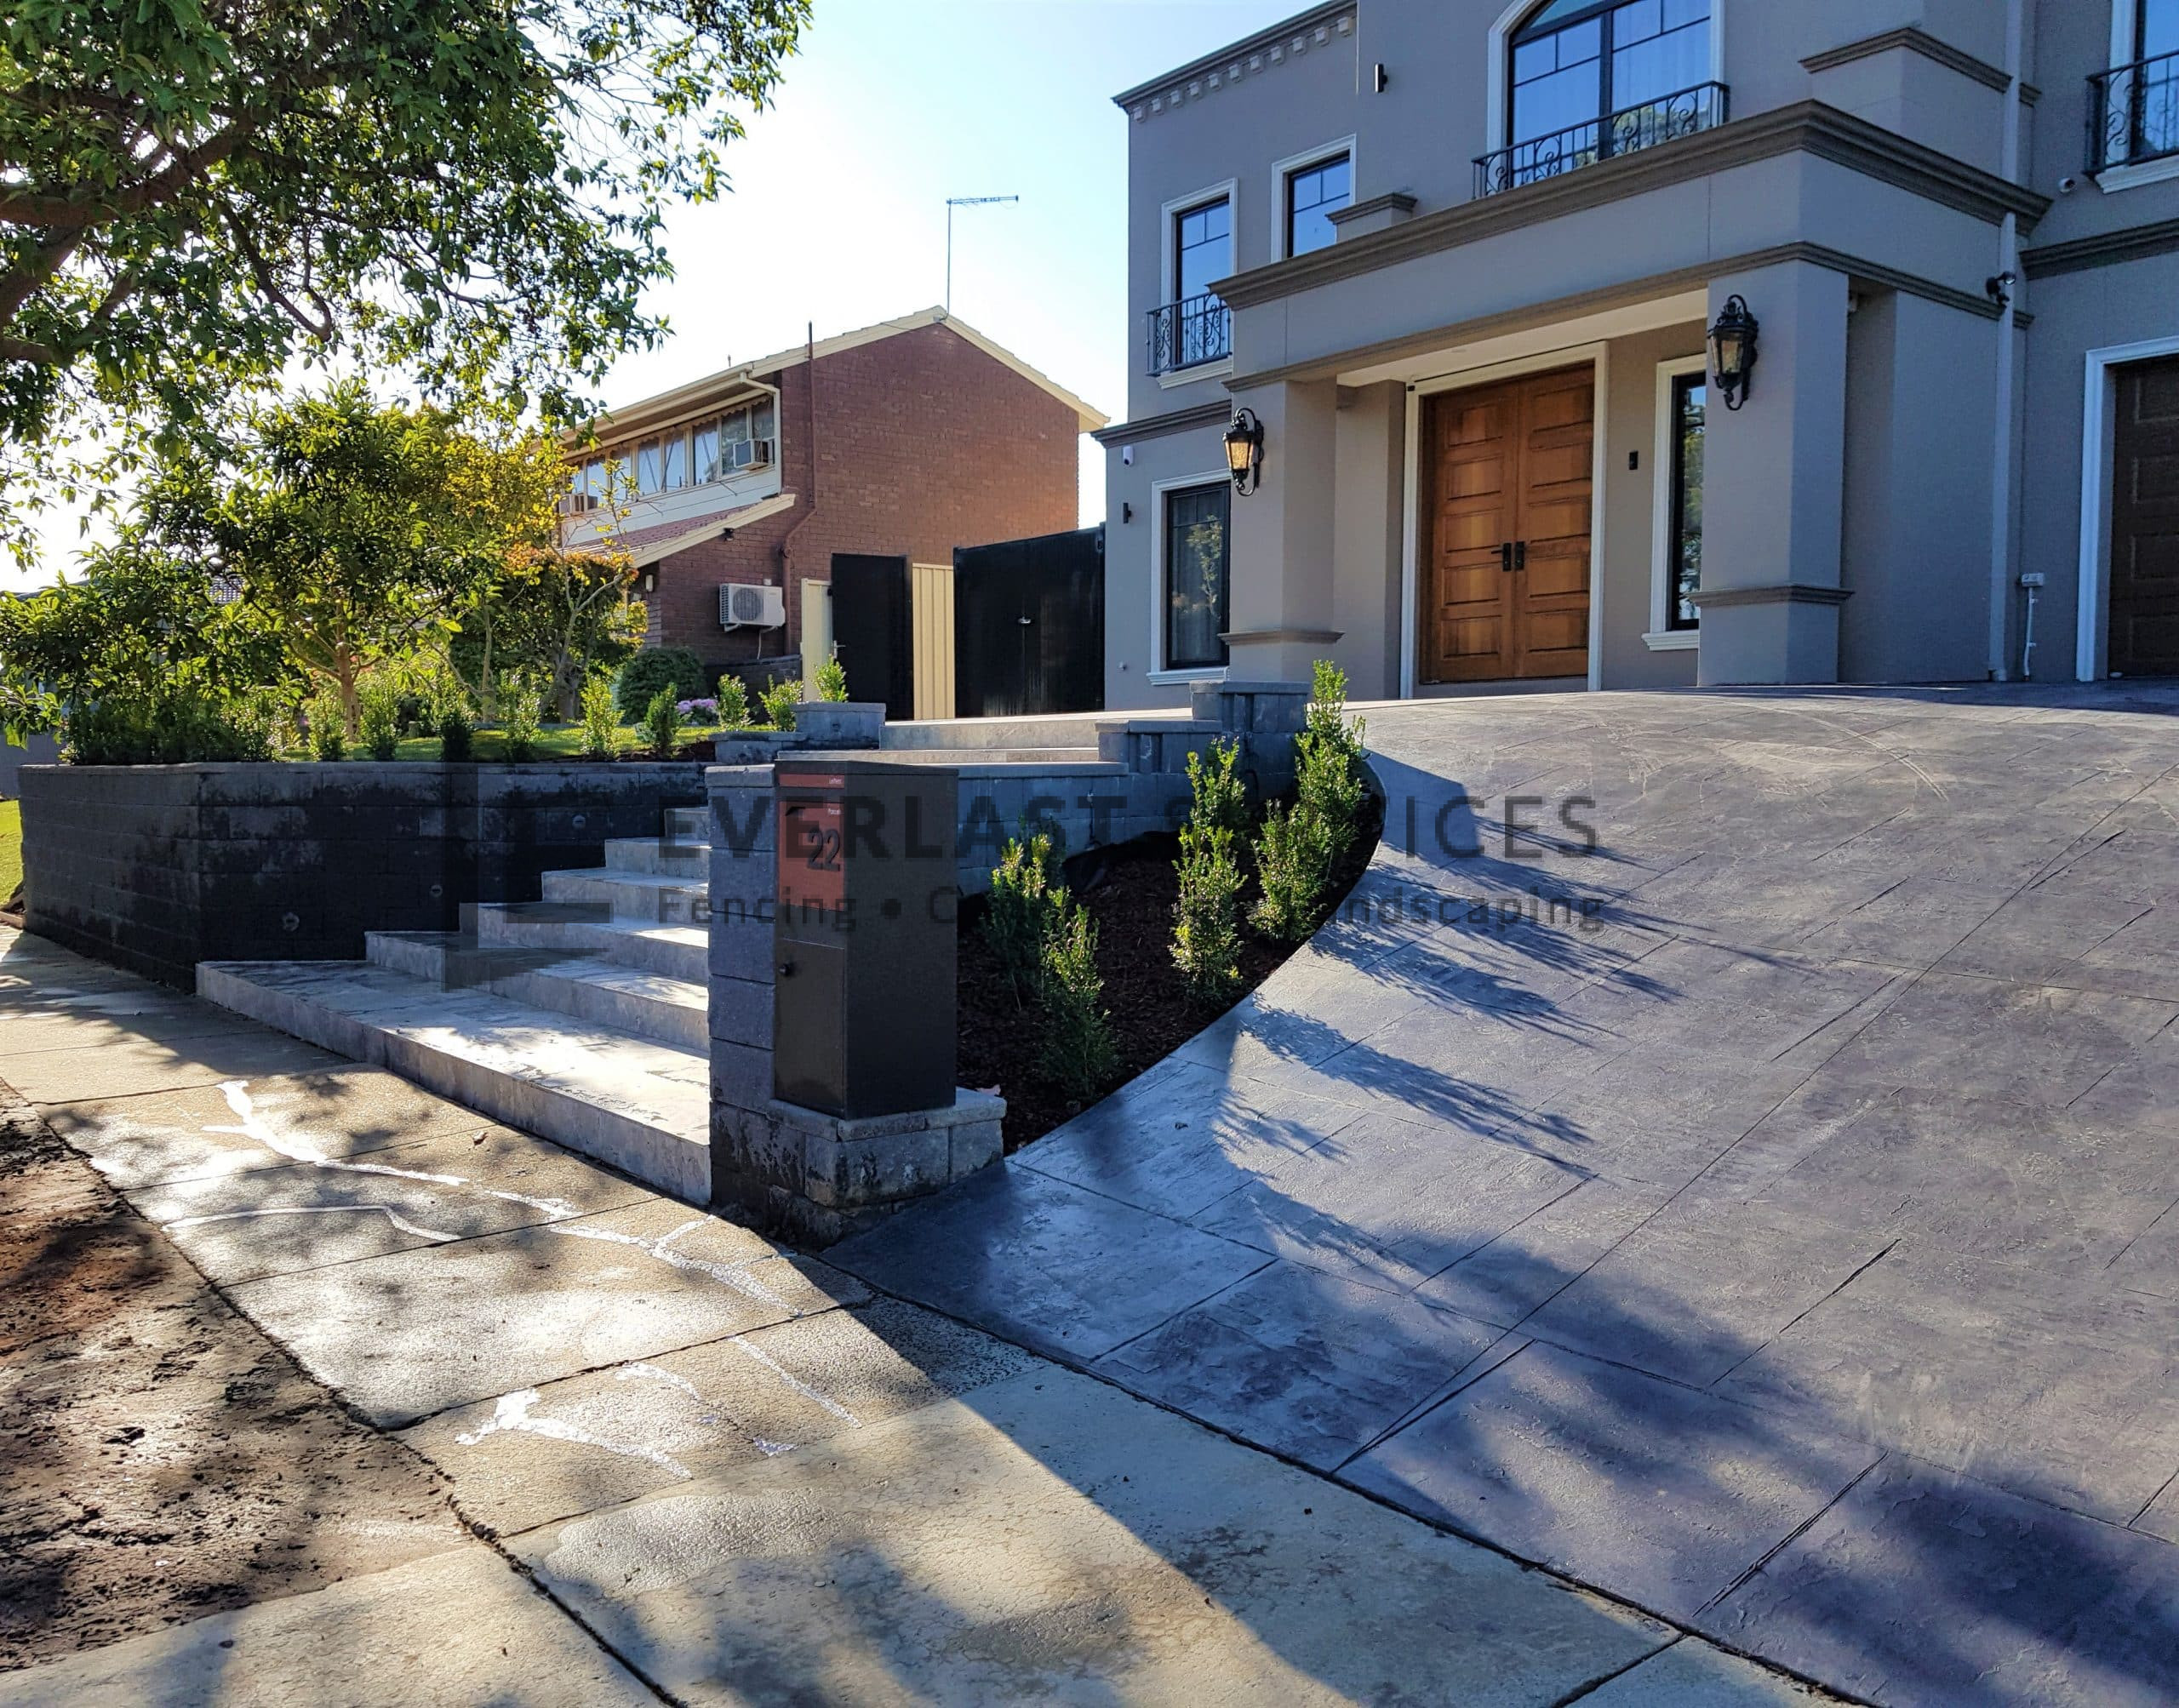 L282 - Landscaping front yard with stamped concrete path